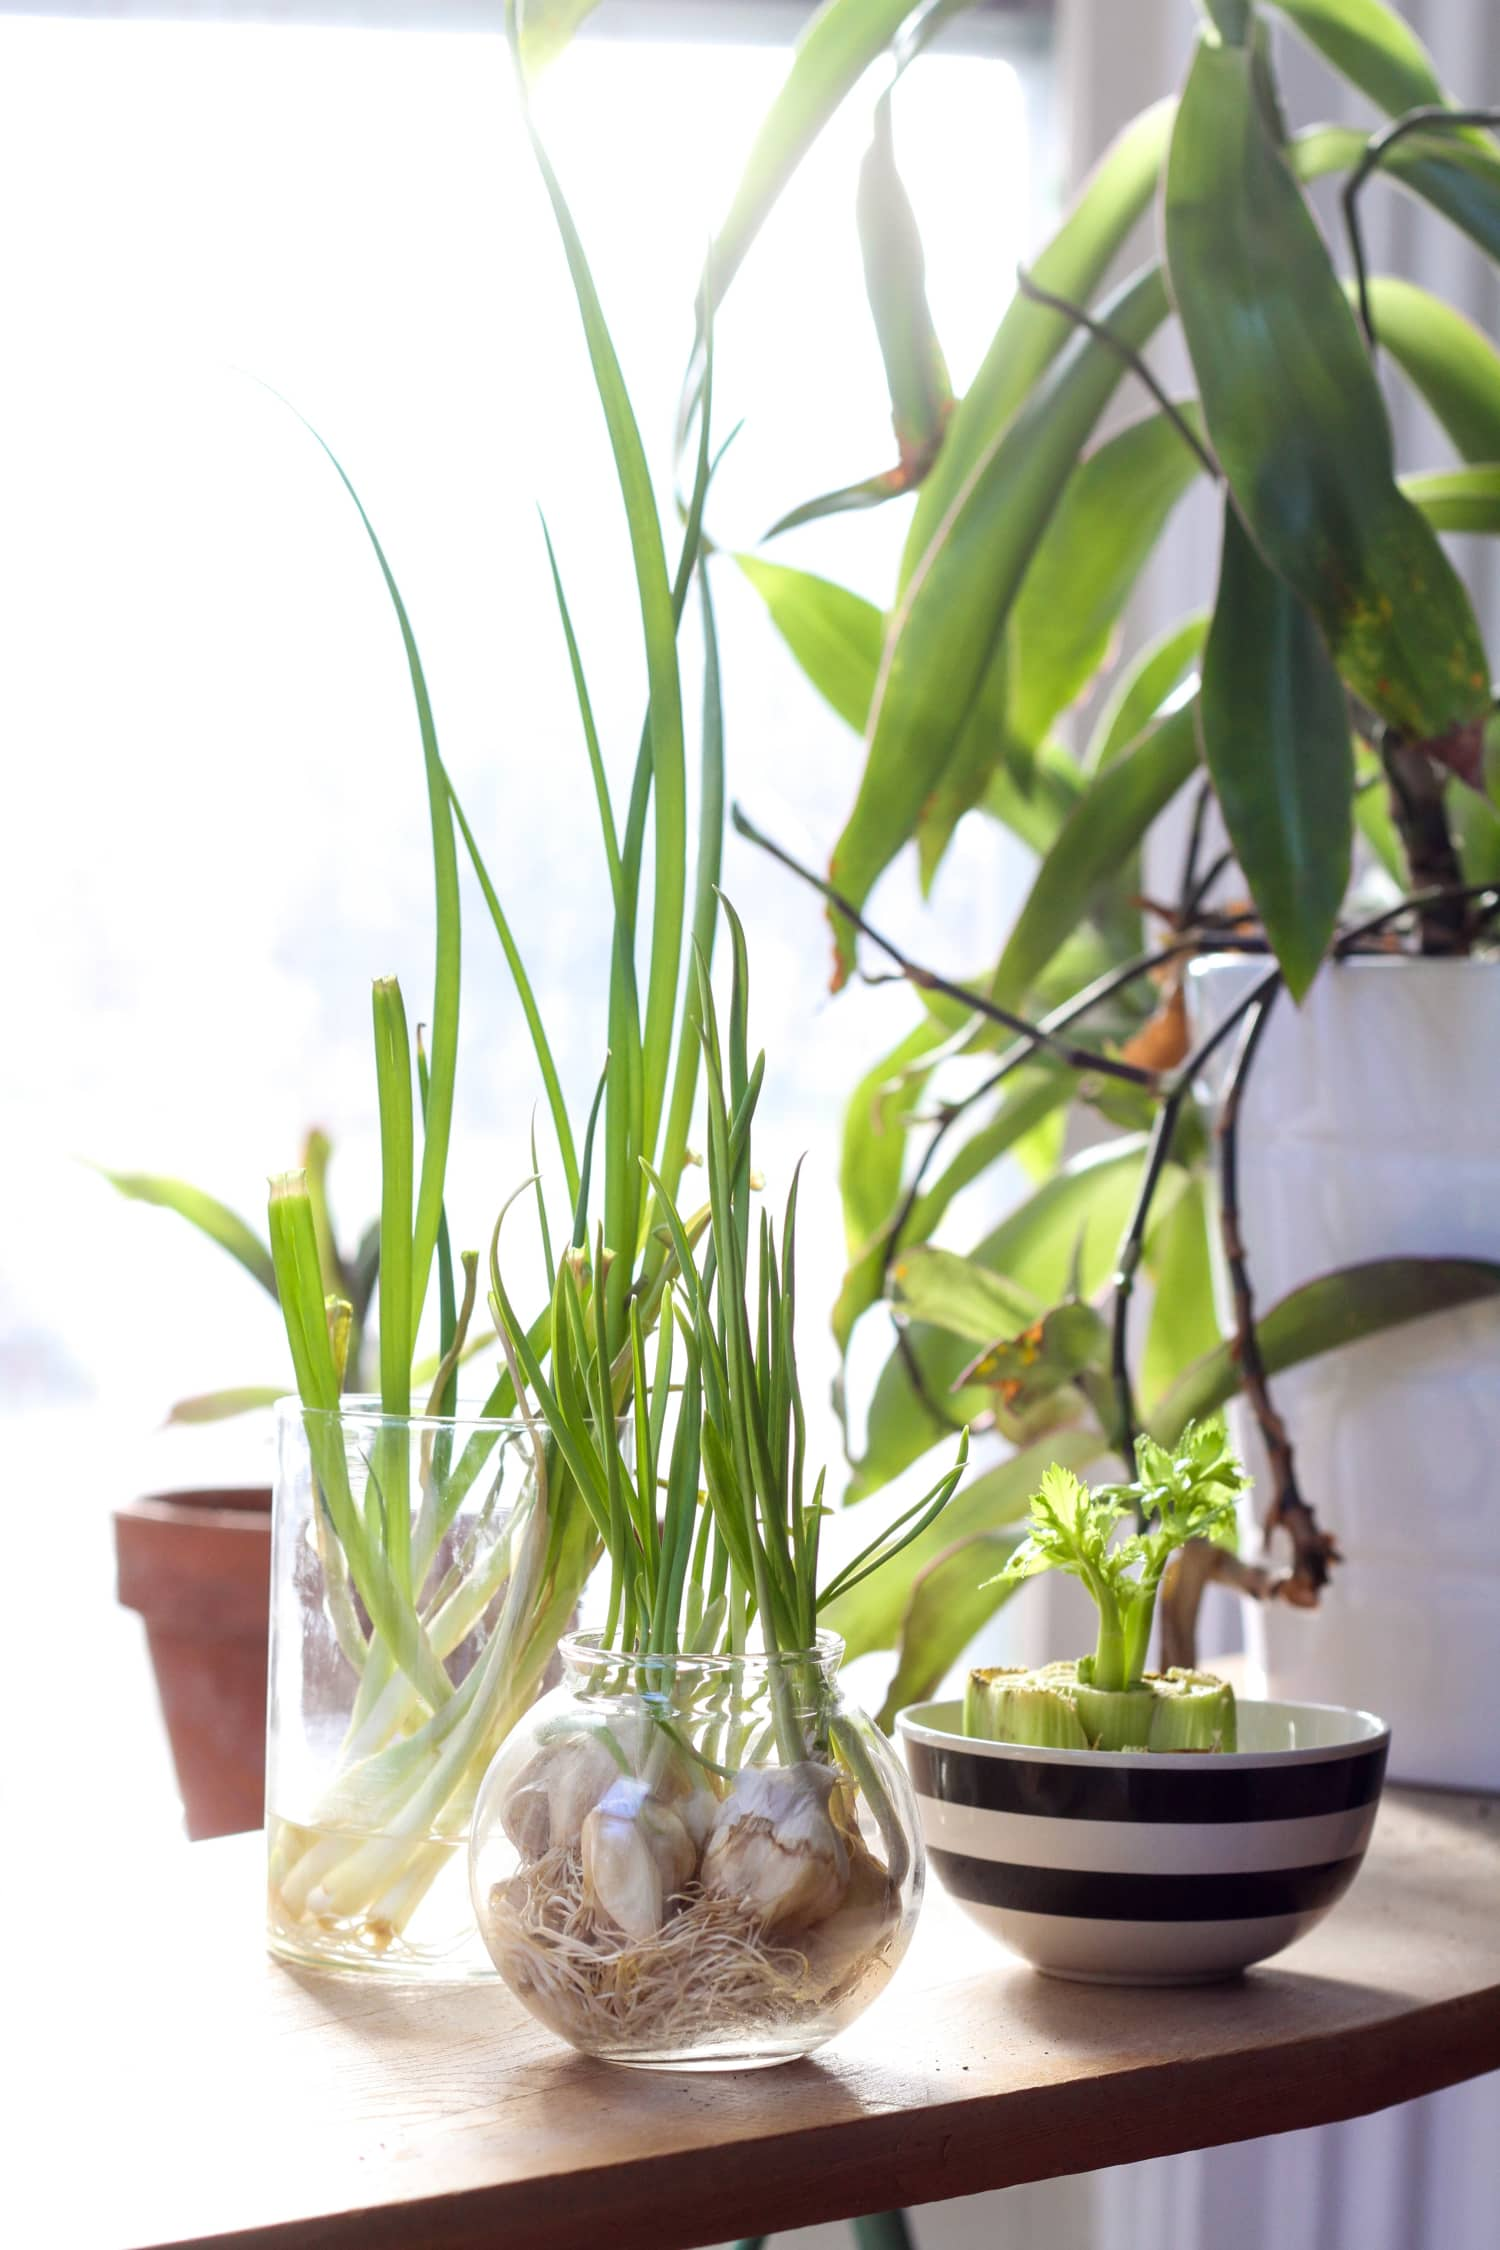 Extend Your Gardening Season: Veggies & Herbs You Can Grow Indoors During the Winter Months